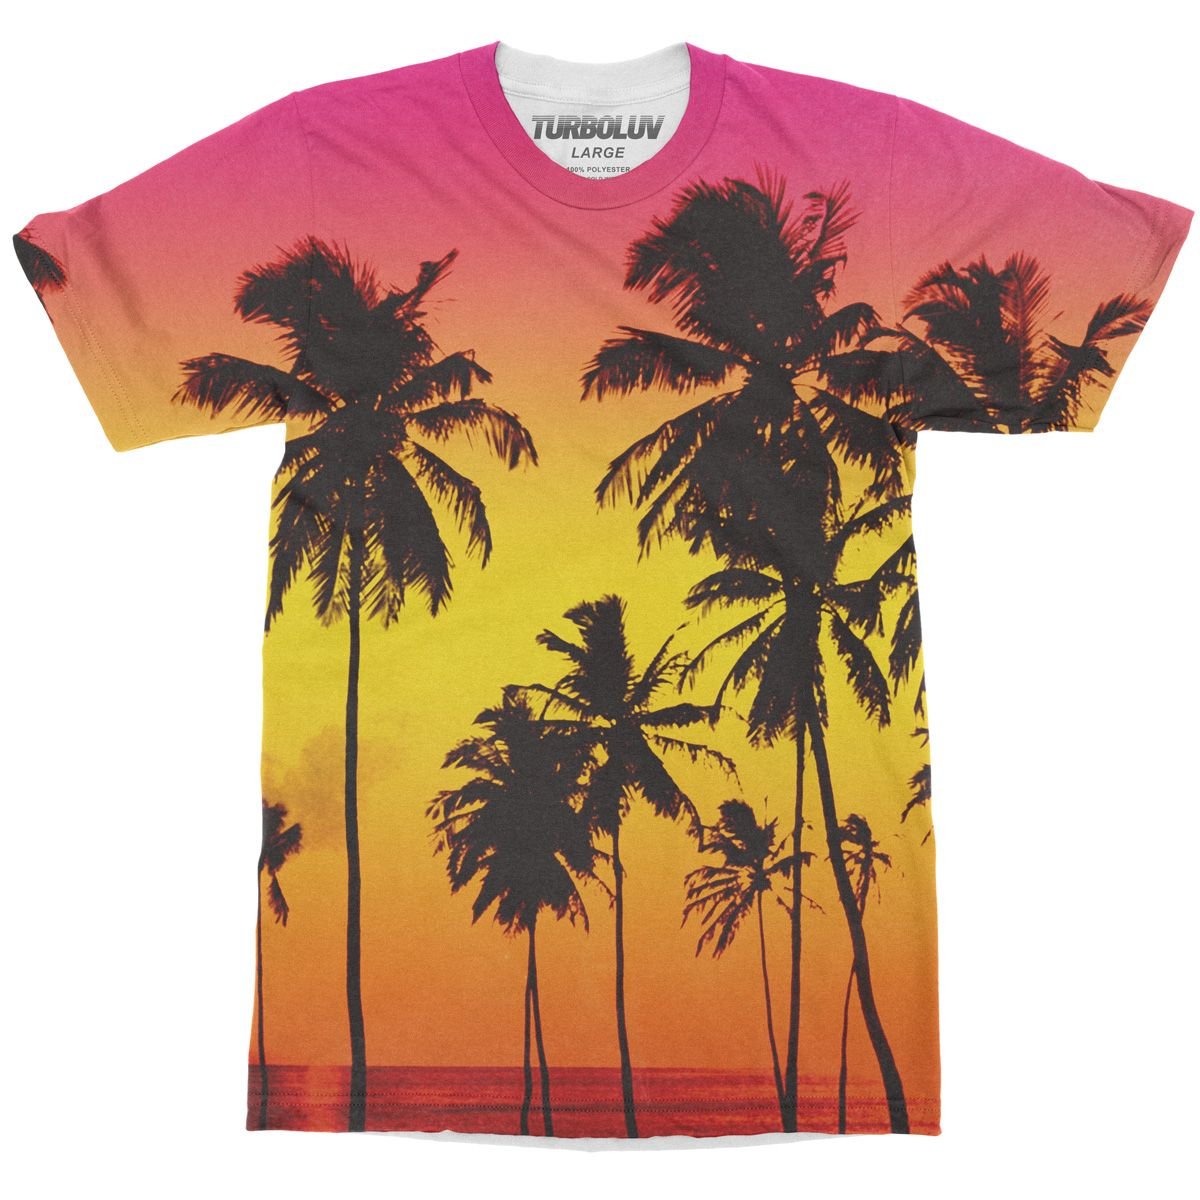 Sunset beach t shirt from turboluv t shirts shirts and for T shirt printing near me